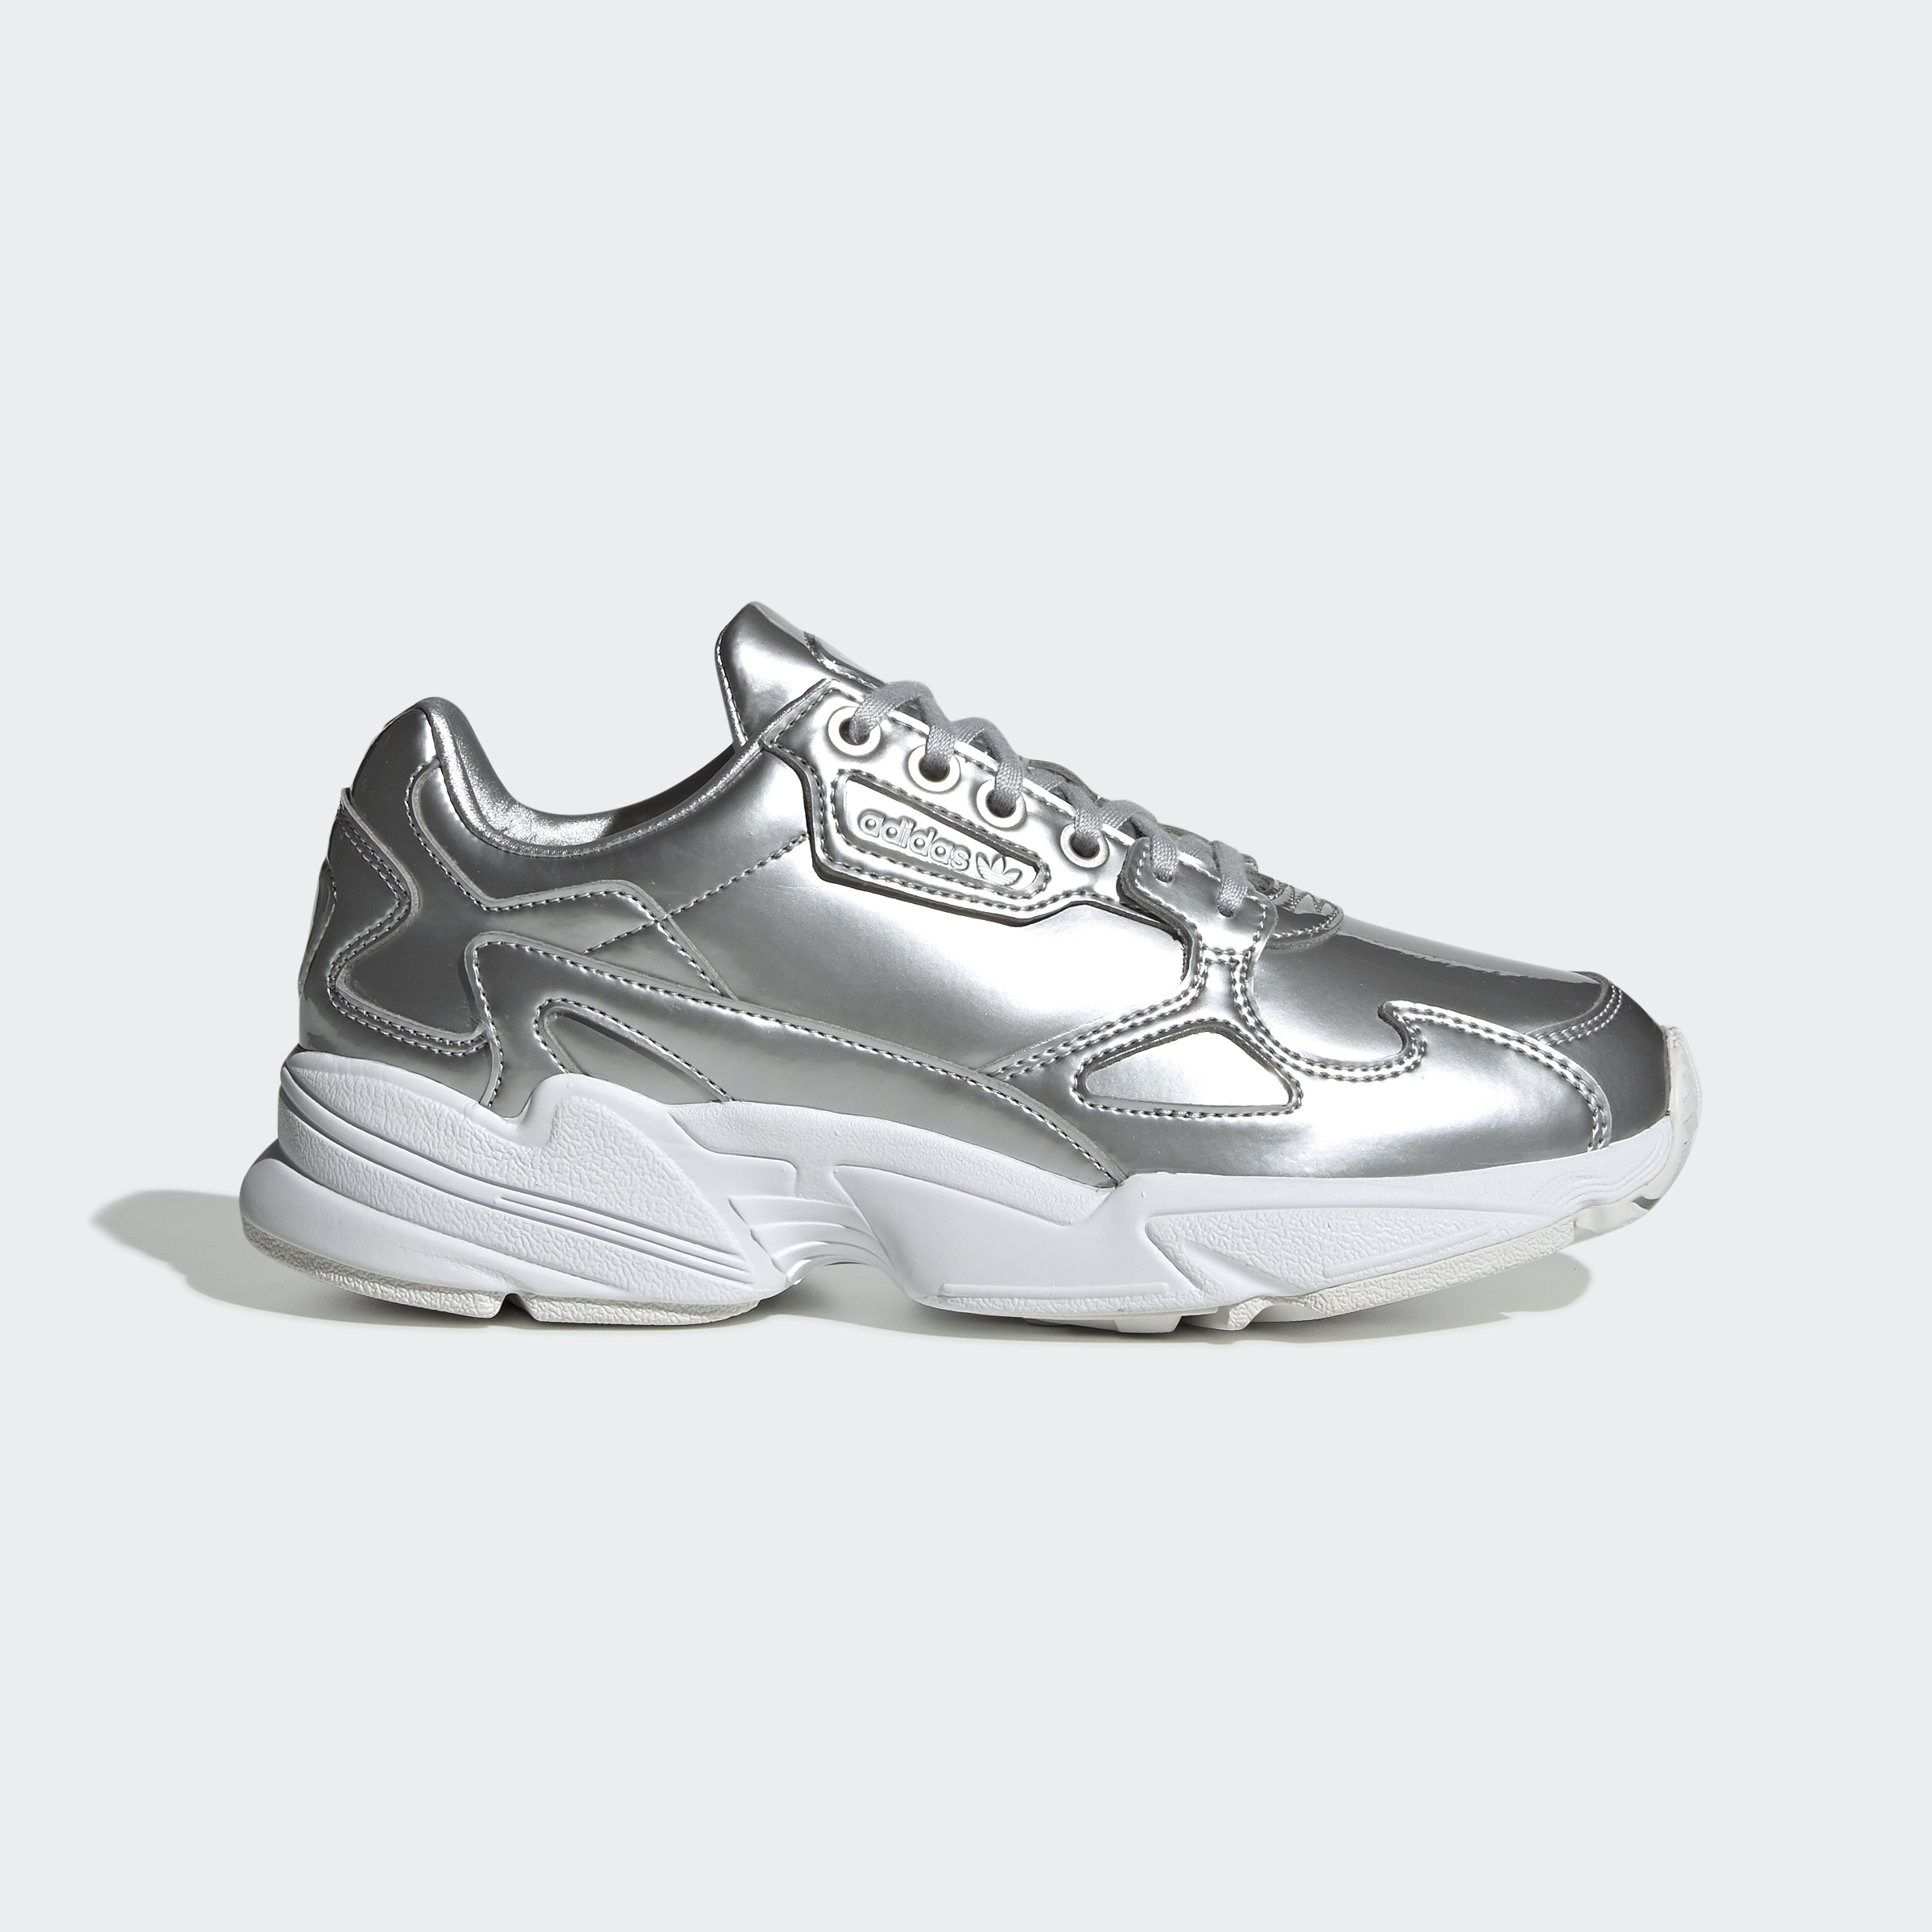 adidas-Falcon-Shoes-Women-039-s-Athletic-amp-Sneakers miniature 17